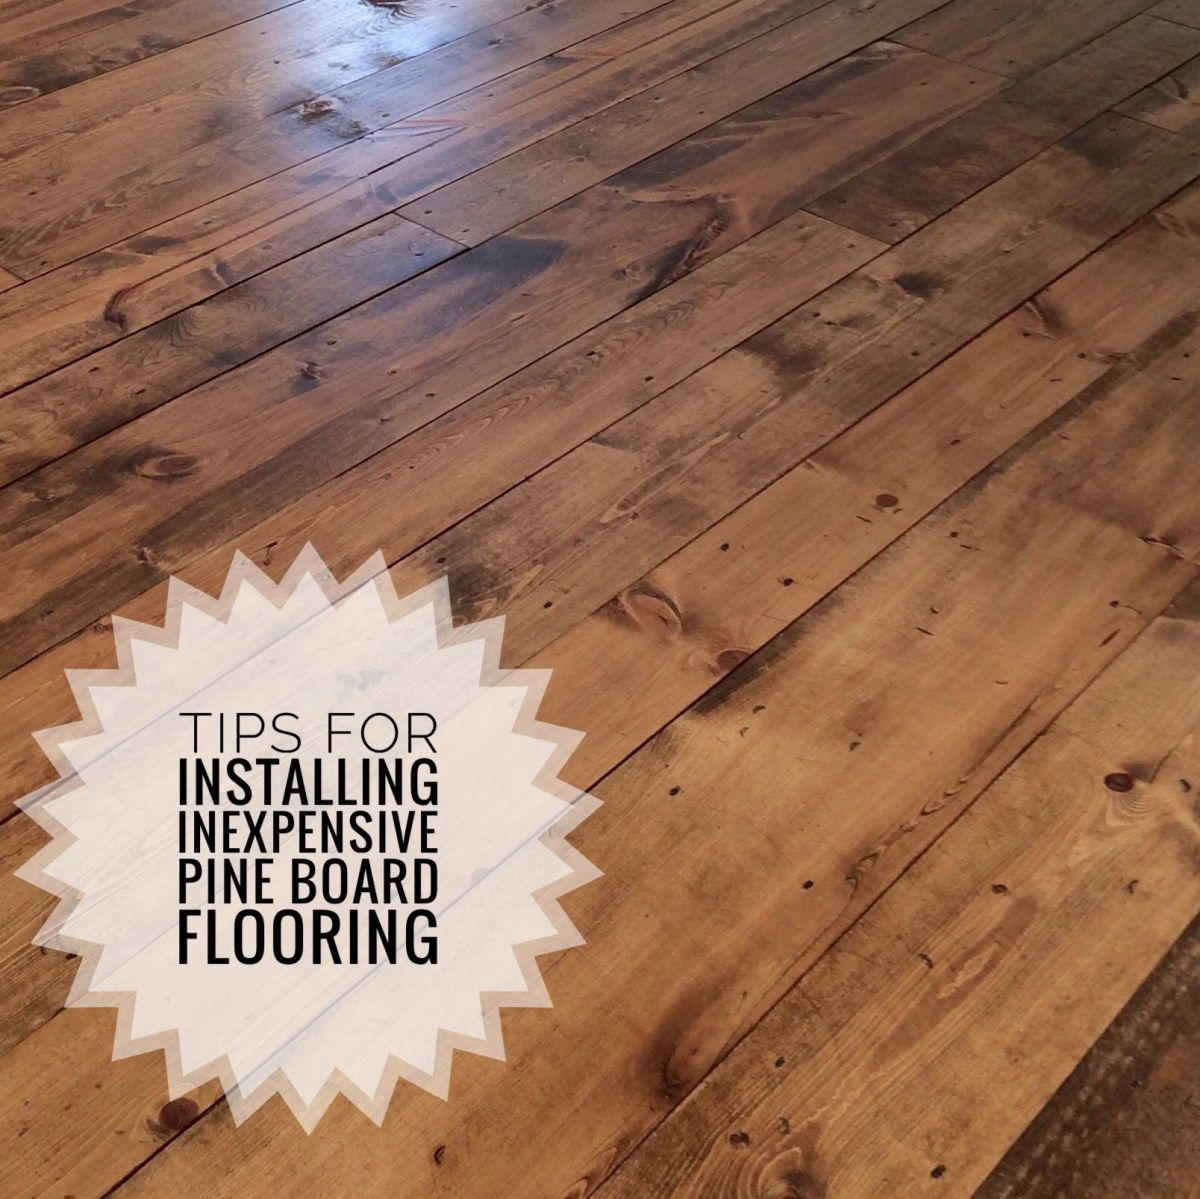 Rustic Hardwood Flooring Tips And Suggestion: Inexpensive Wood Flooring Using Pine Boards